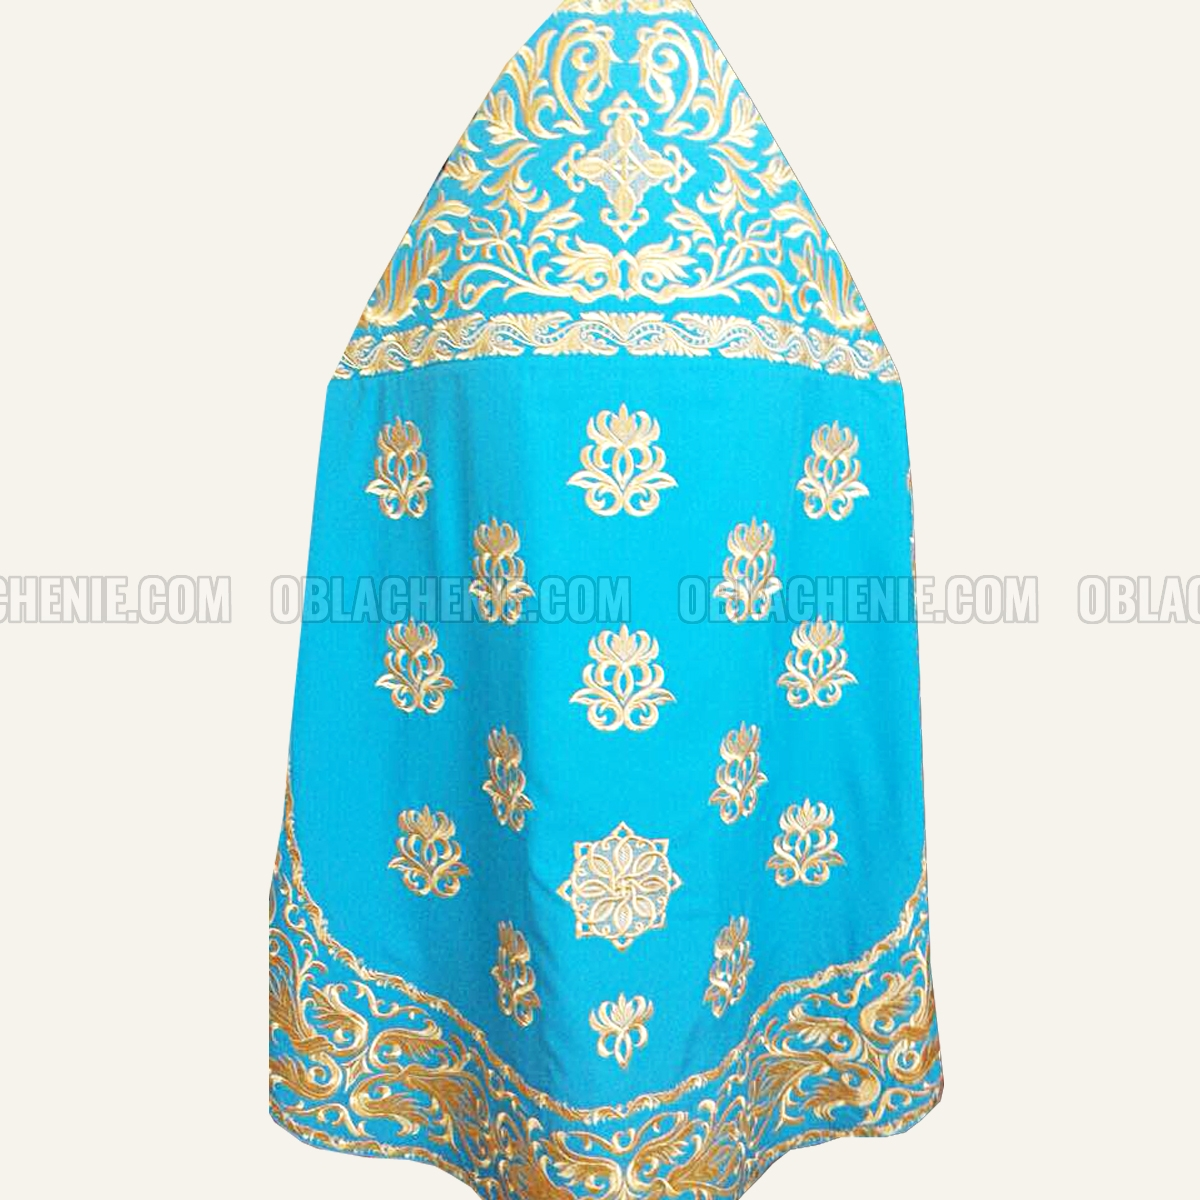 Embroidered priest's vestments 10178